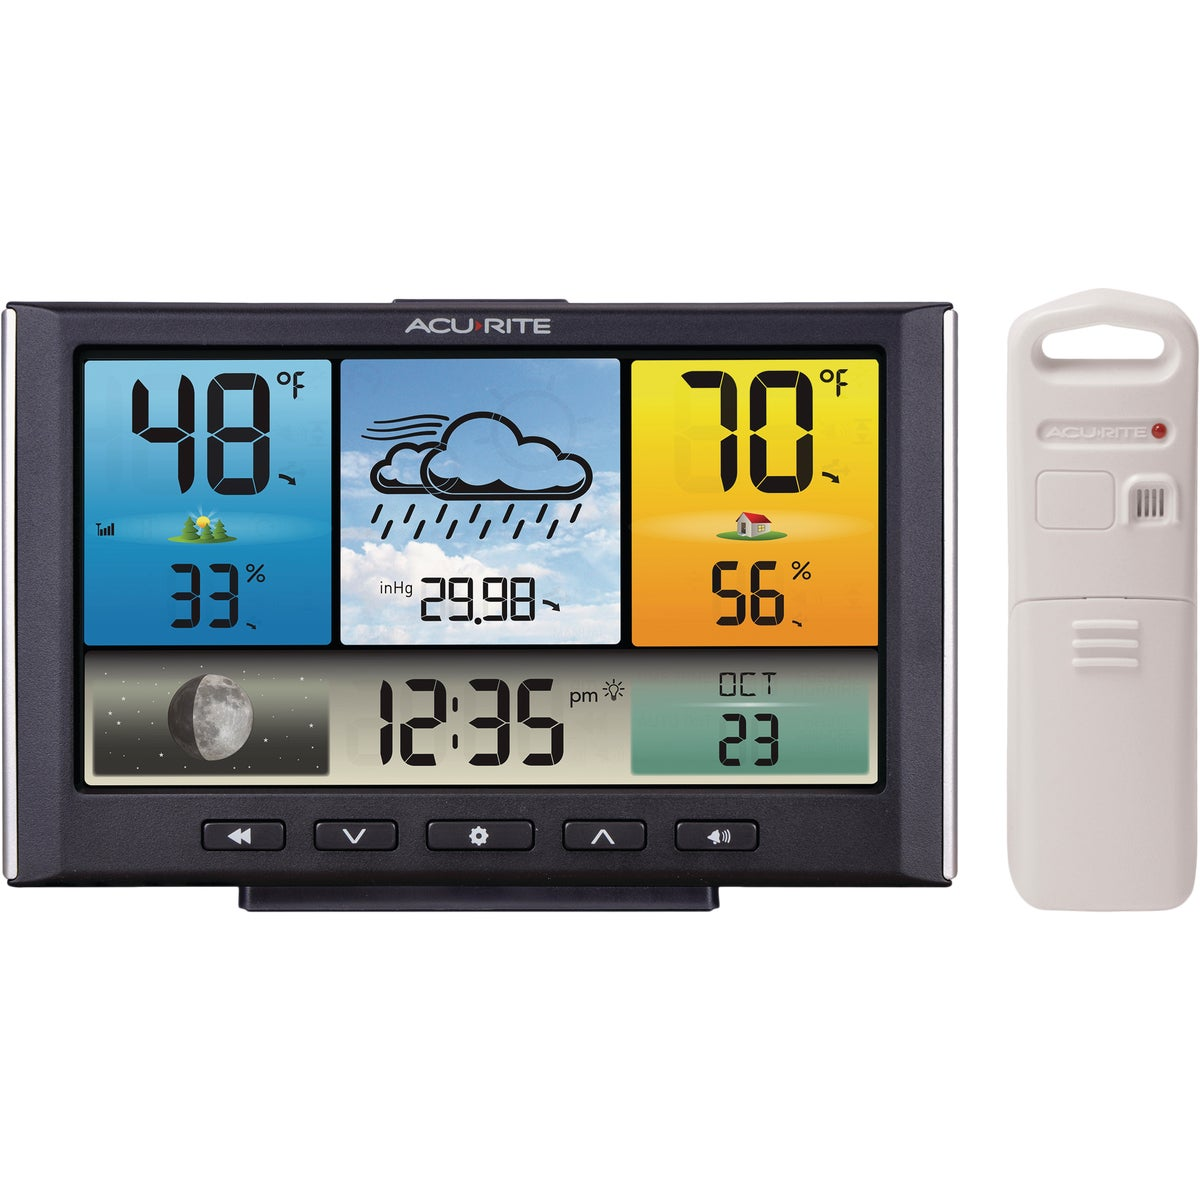 Item 650459, Illuminated color display shows indoor/outdoor temperature and humidity.